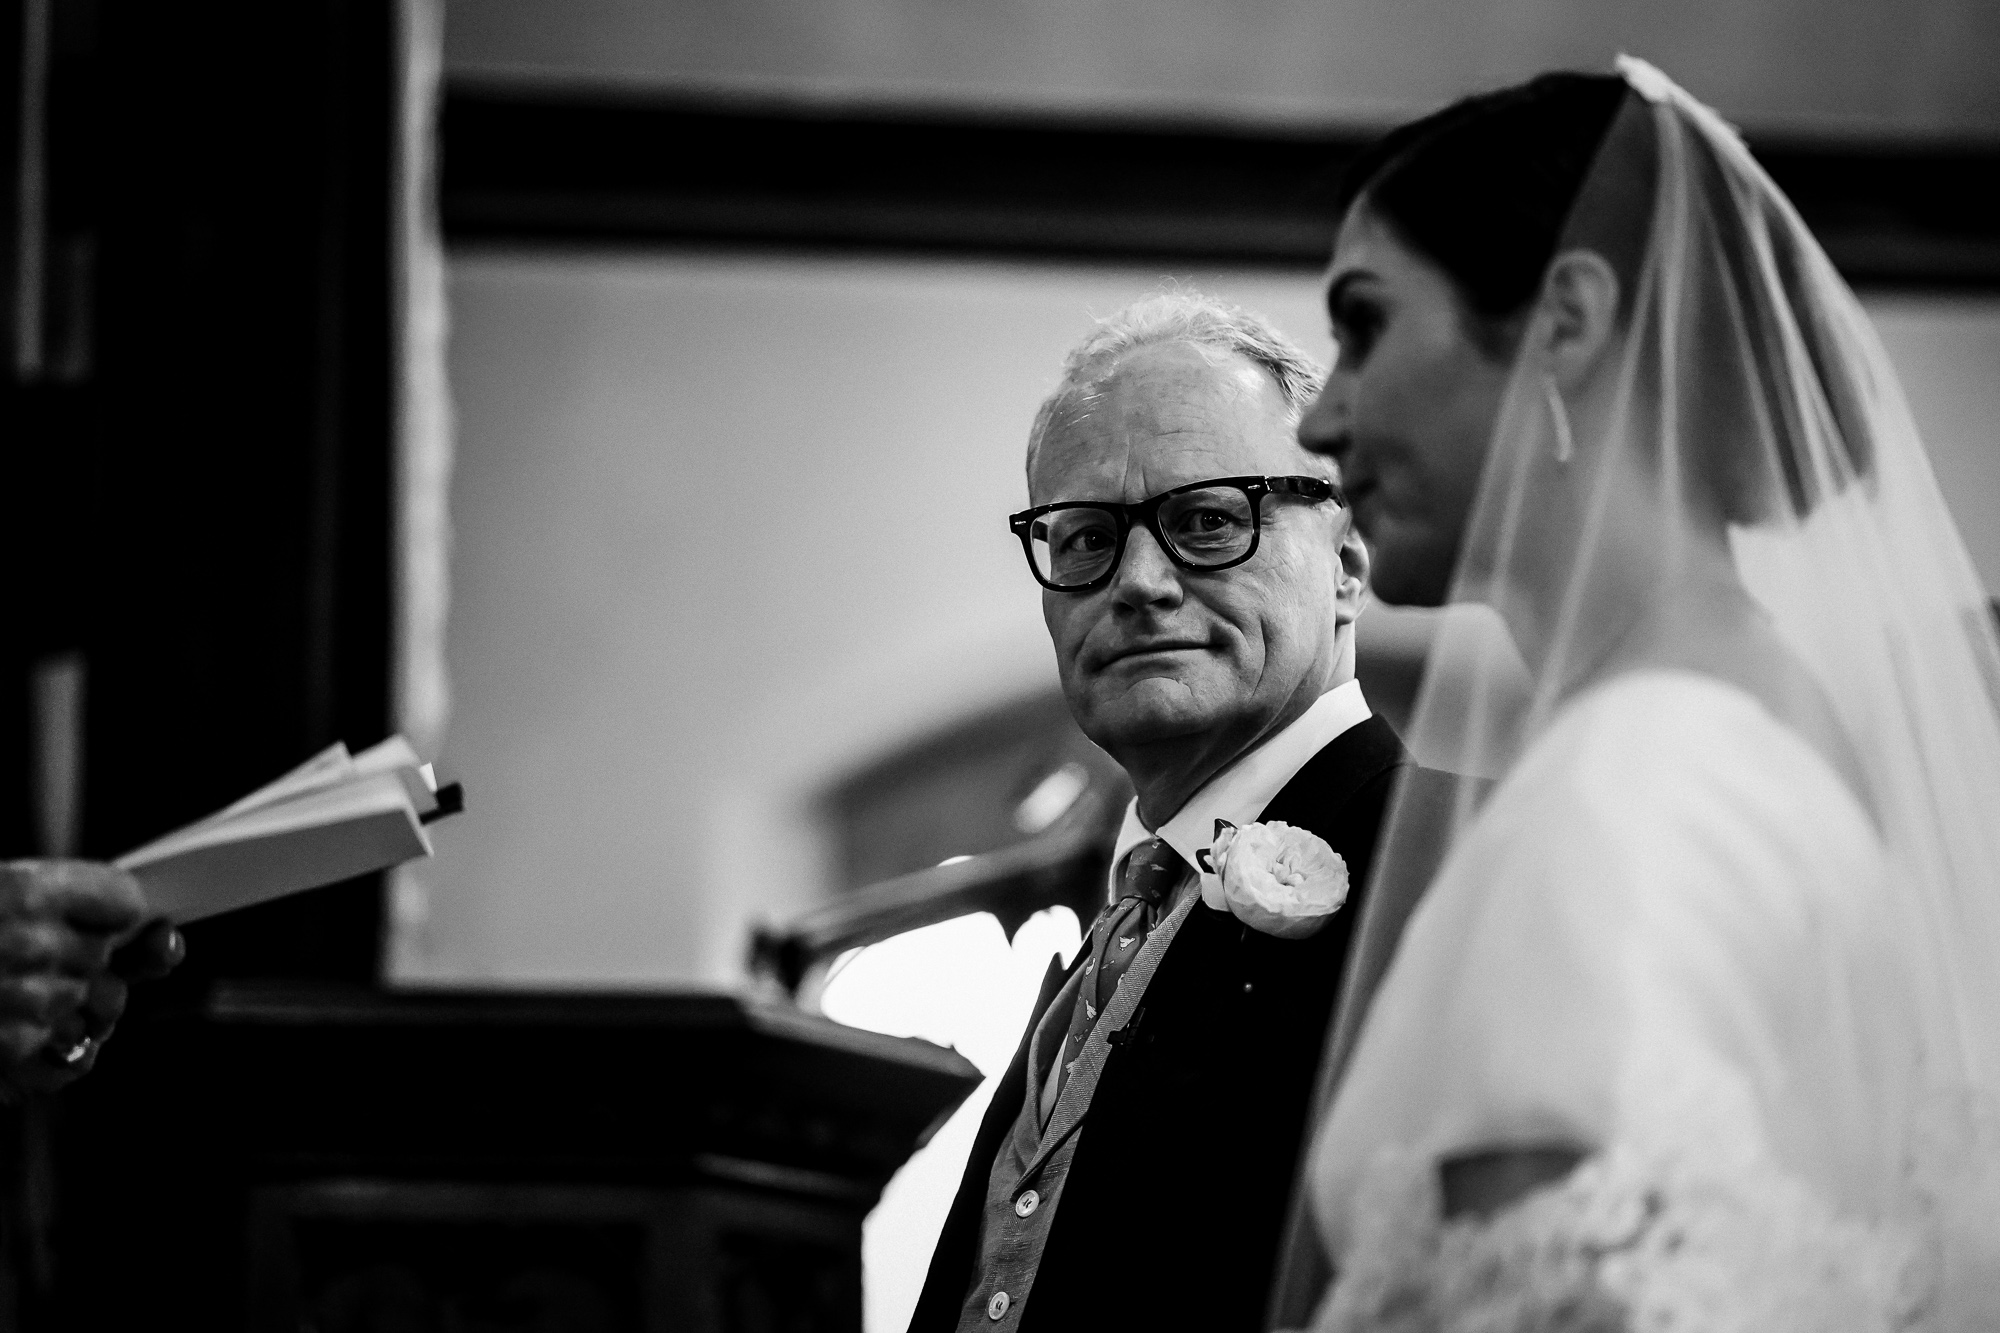 Cheshire wedding at home wedding photography (19 of 49).jpg